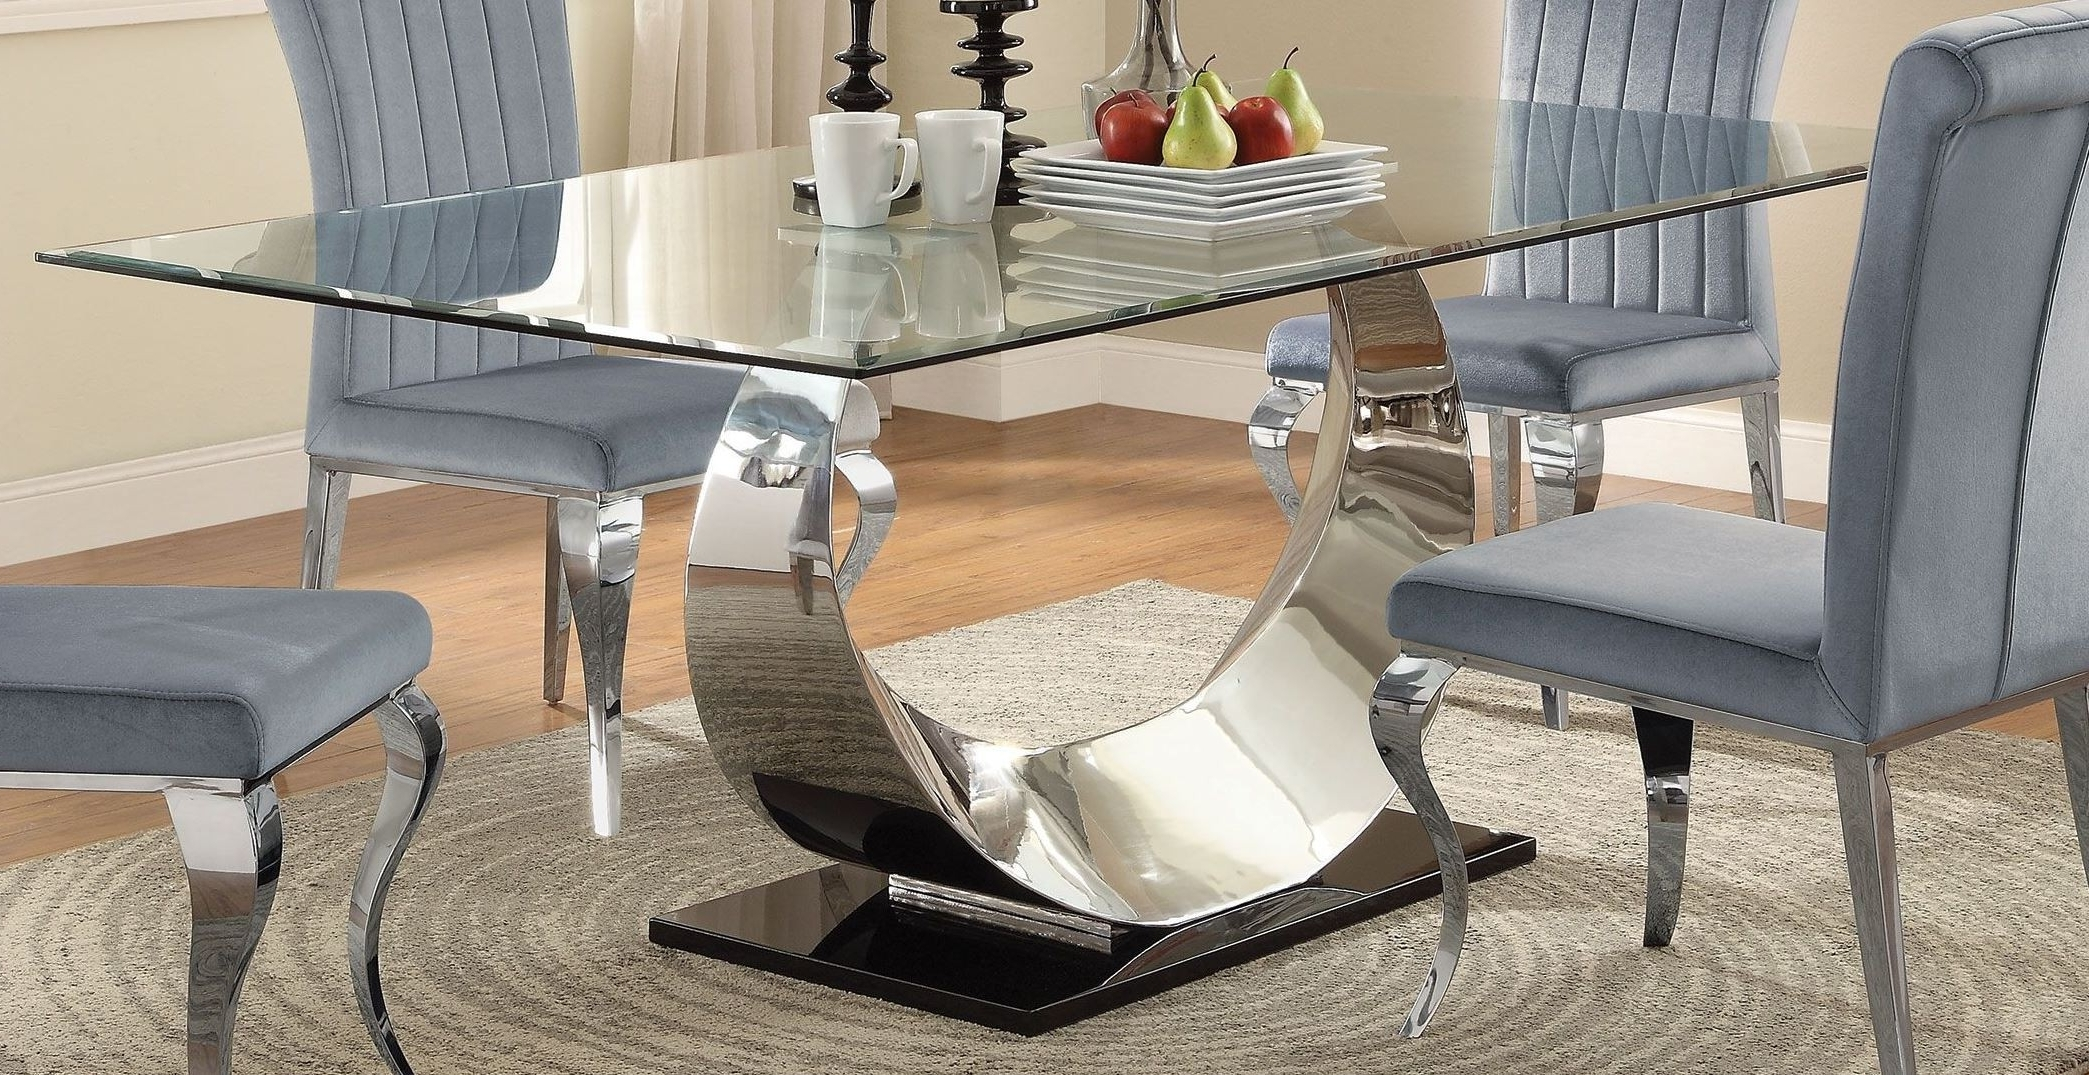 Coleman Furniture With Regard To Most Current Chrome Dining Room Sets (Gallery 25 of 25)